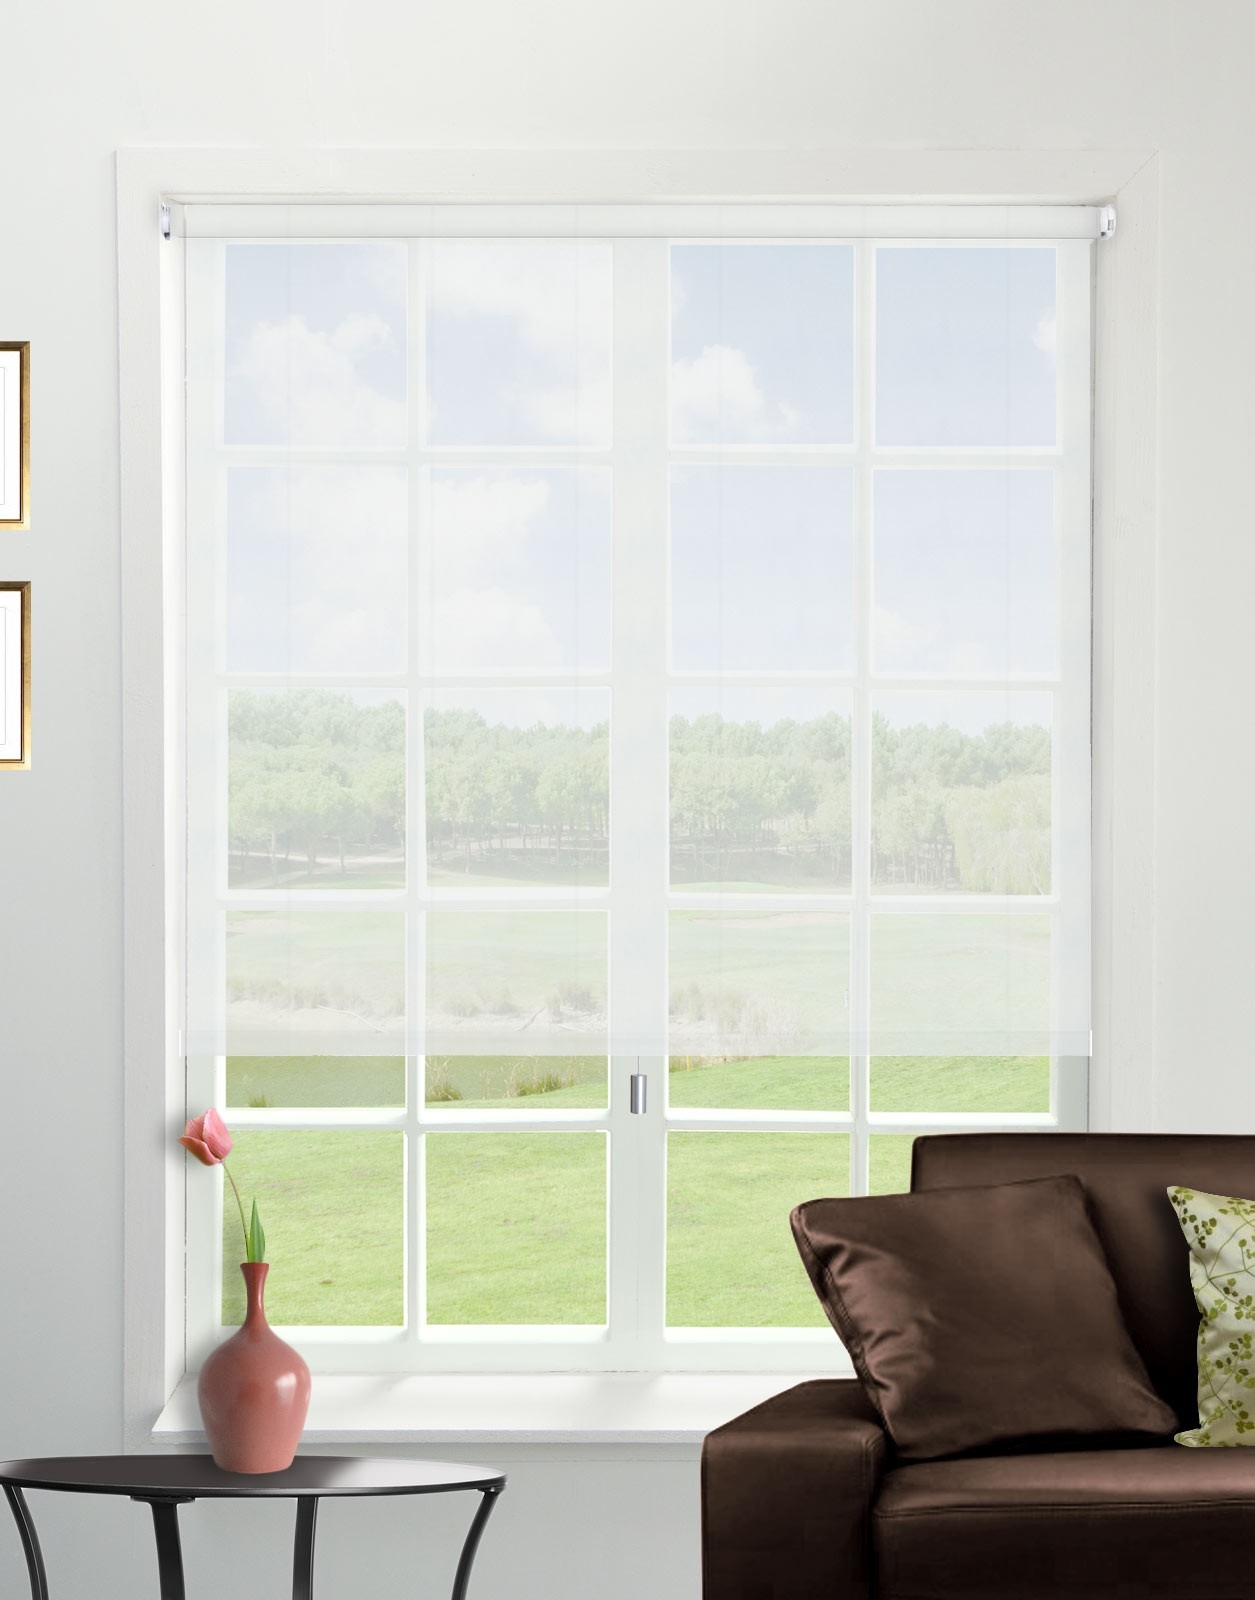 Voile White Roller Blind Direct Order Blinds Uk Intended For Sheer Roller Blinds (View 5 of 15)